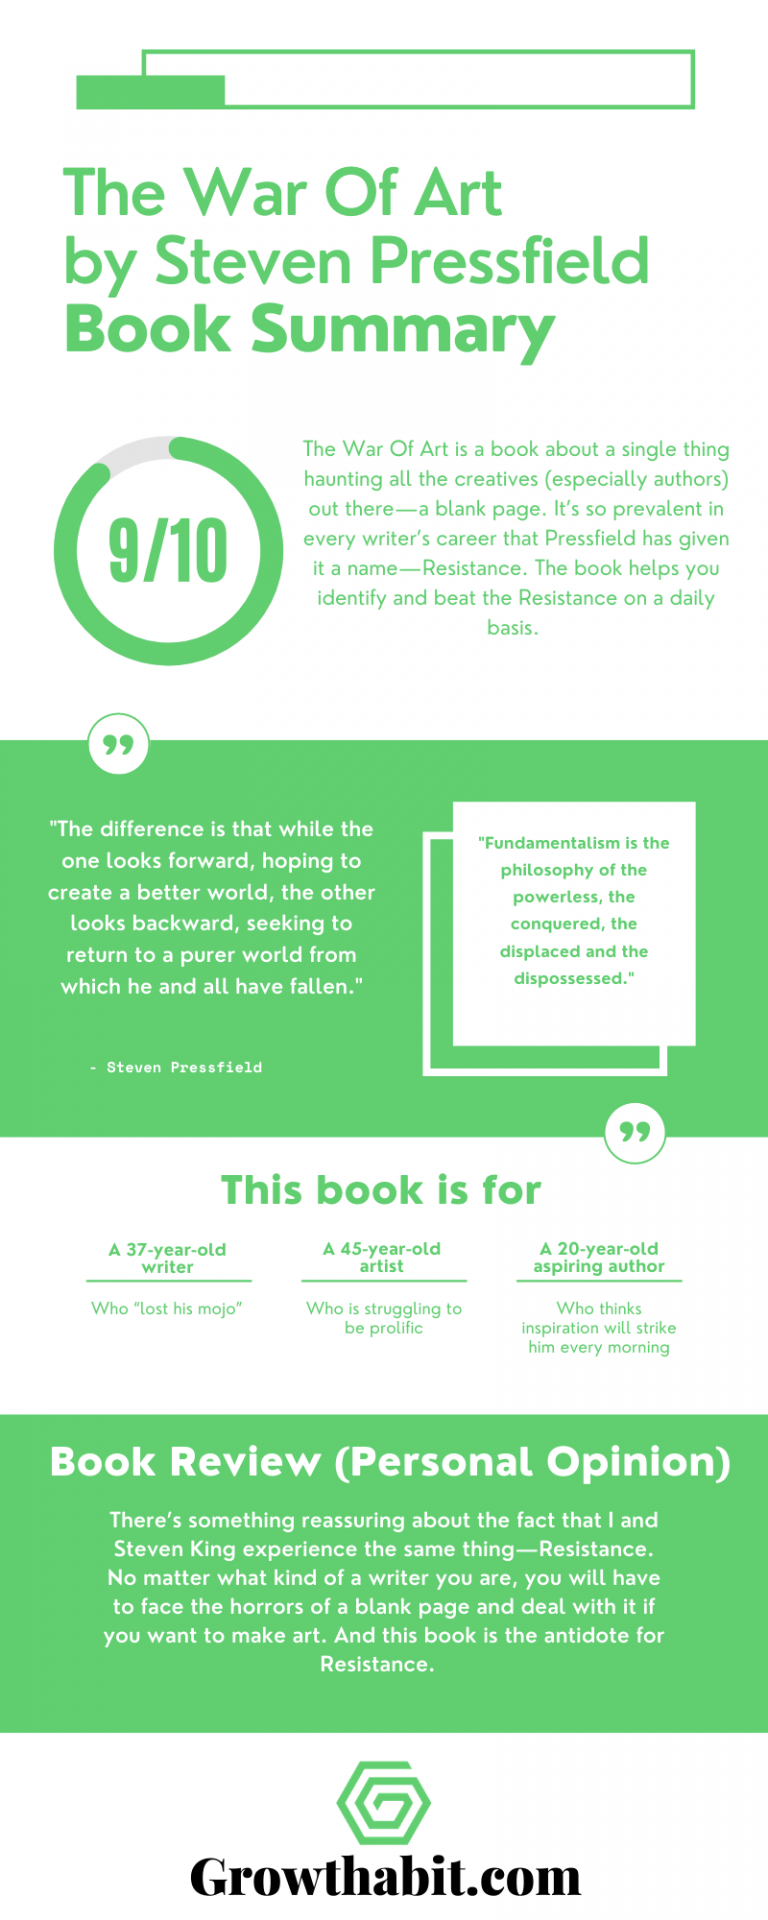 The War Of Art by Steven Pressfield - Book Summary Infographic